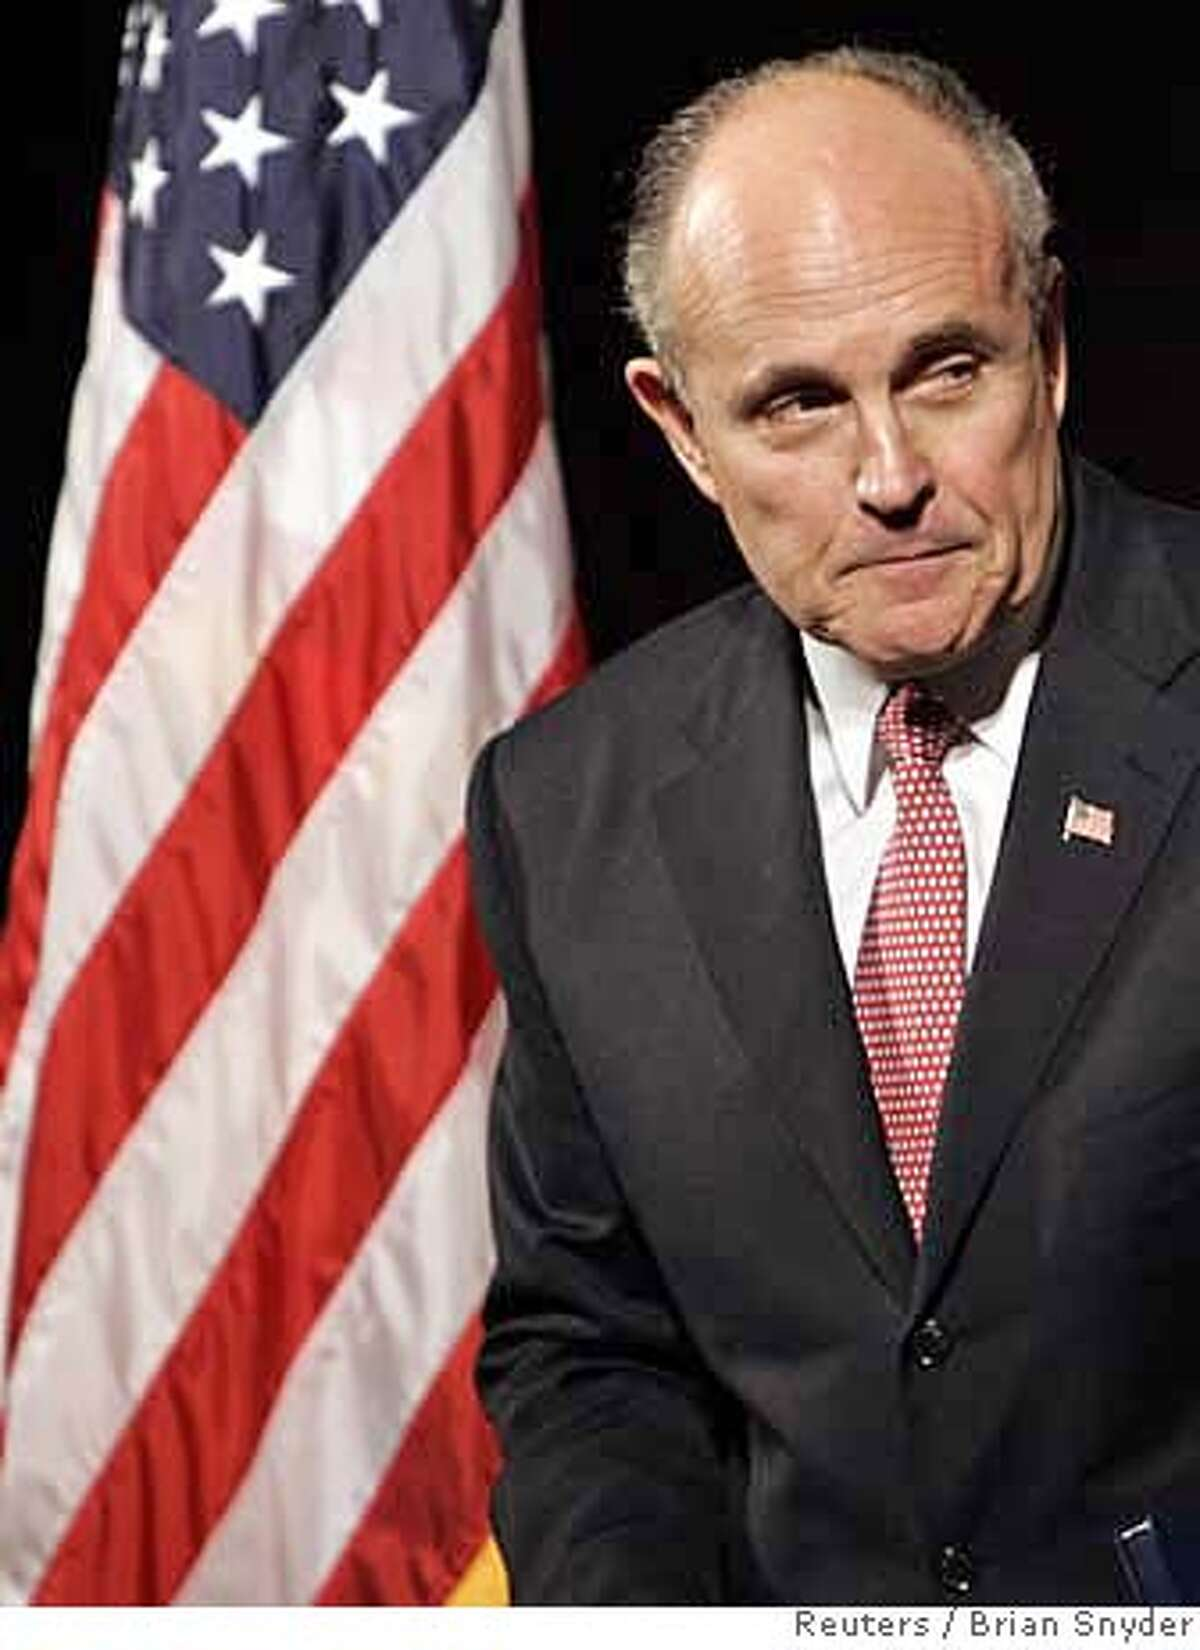 Former New York City Mayor and possible Presidential candidate Rudolph Giuliani steps away from the podium after speaking at the New Hampshire Republican convention in Manchester, New Hampshire January 27, 2007. REUTERS/Brian Snyder (UNITED STATES) Ran on: 01-28-2007 Rudolph Giuliani steps away from the podium after speaking at the New Hampshire Republican convention in Manchester.